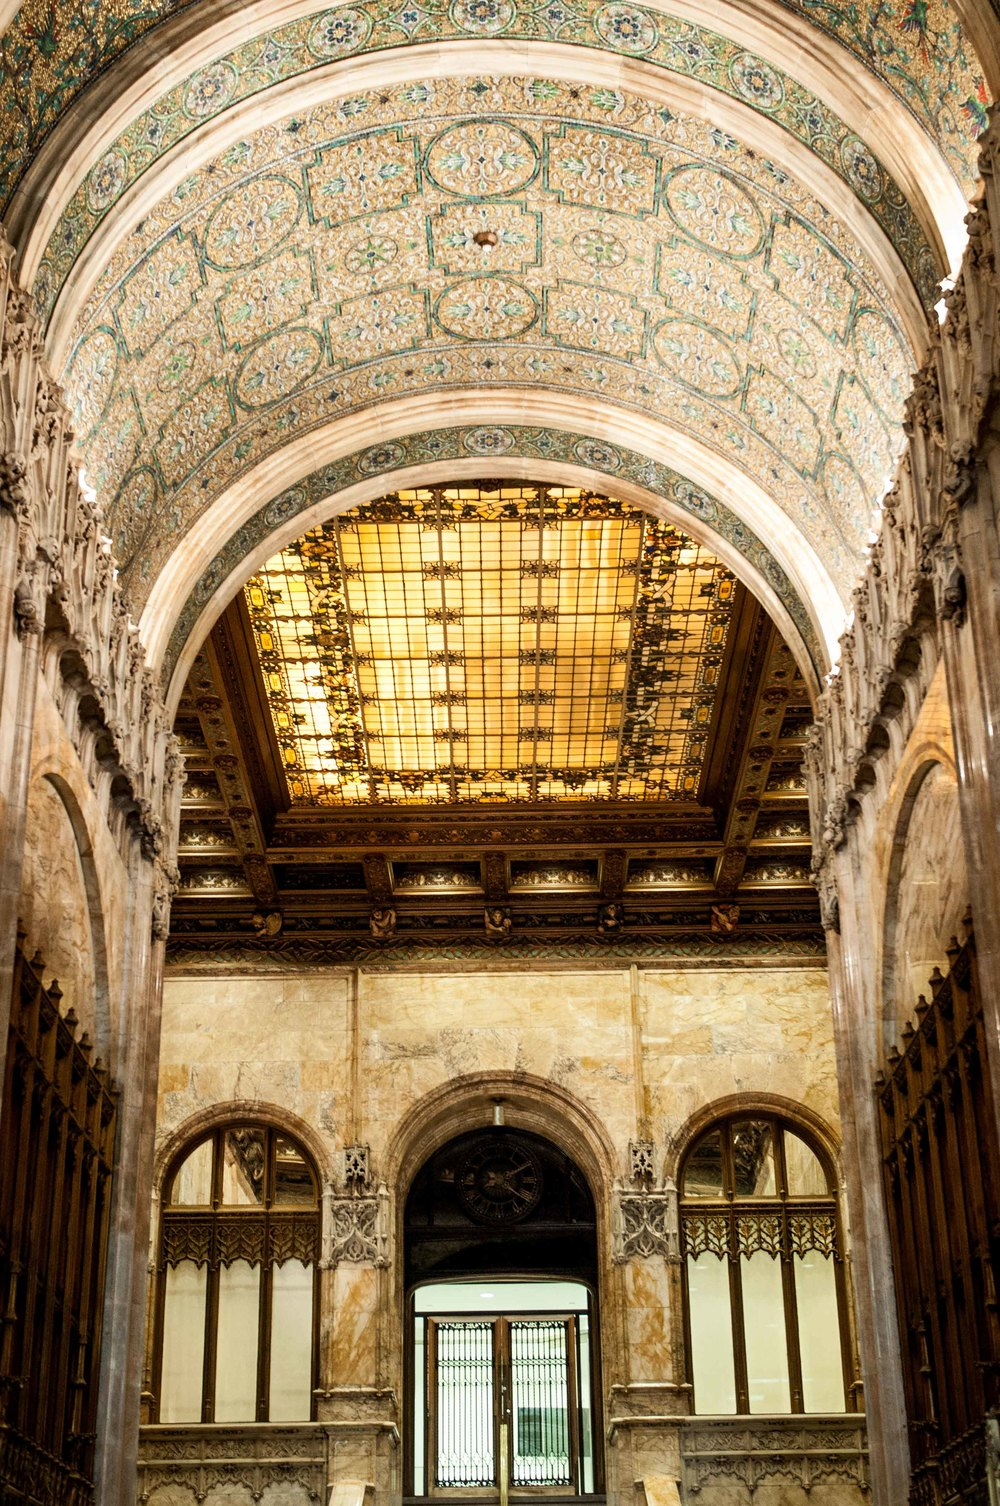 The famed lobby of the Woolworth building lives up to the drama and yearning! A gilded ceiling set afire with the stunning work of some of the best artisans in the city at the time, it is a beauty to behold!